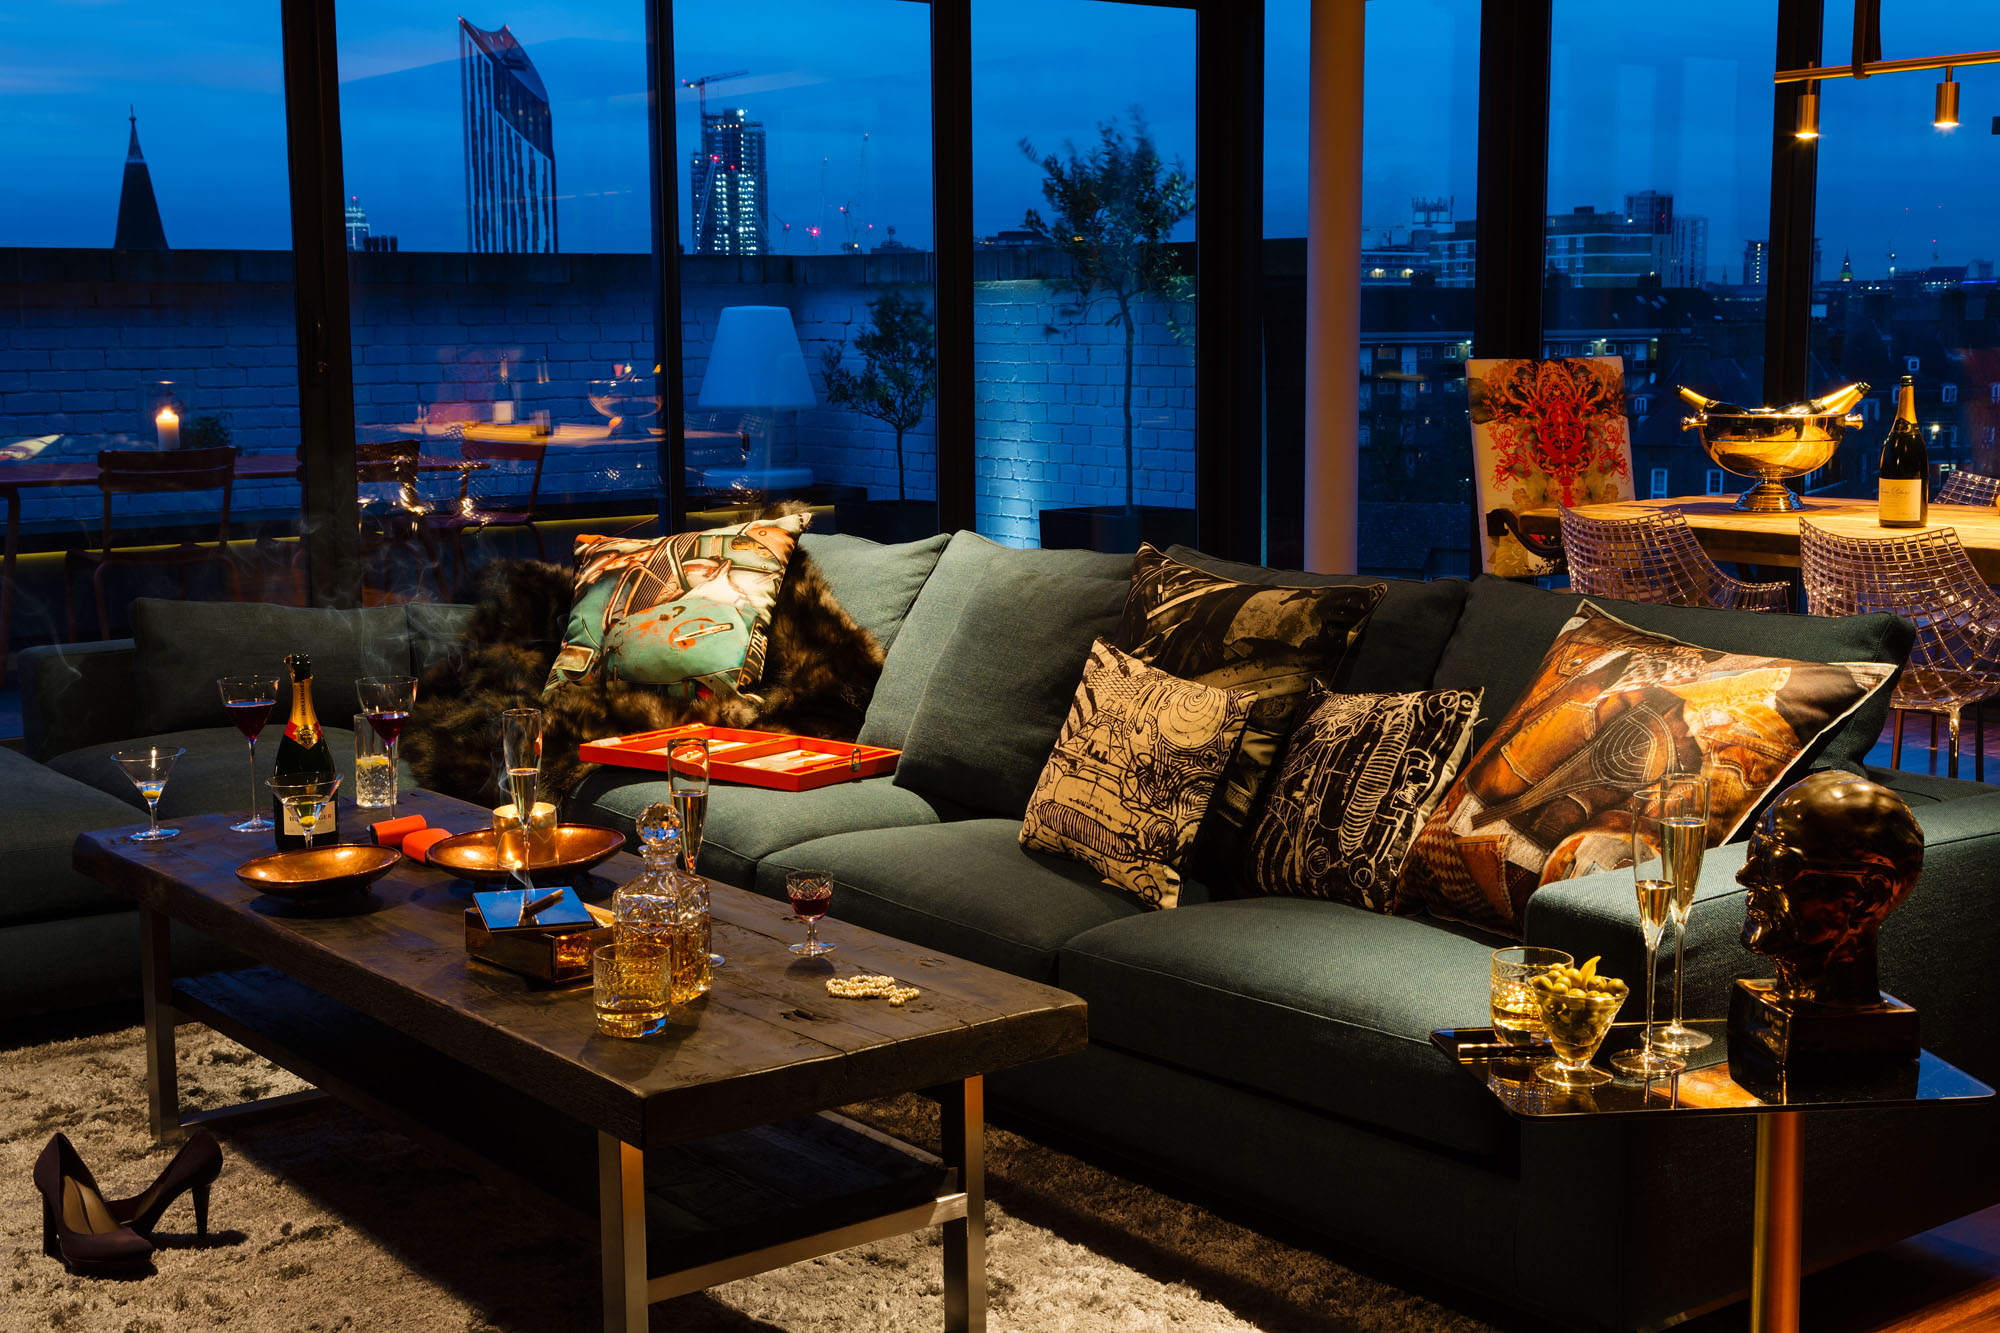 Landscape Big Sofa A Penthouse That Celebrates London With A Cutting-edge Design